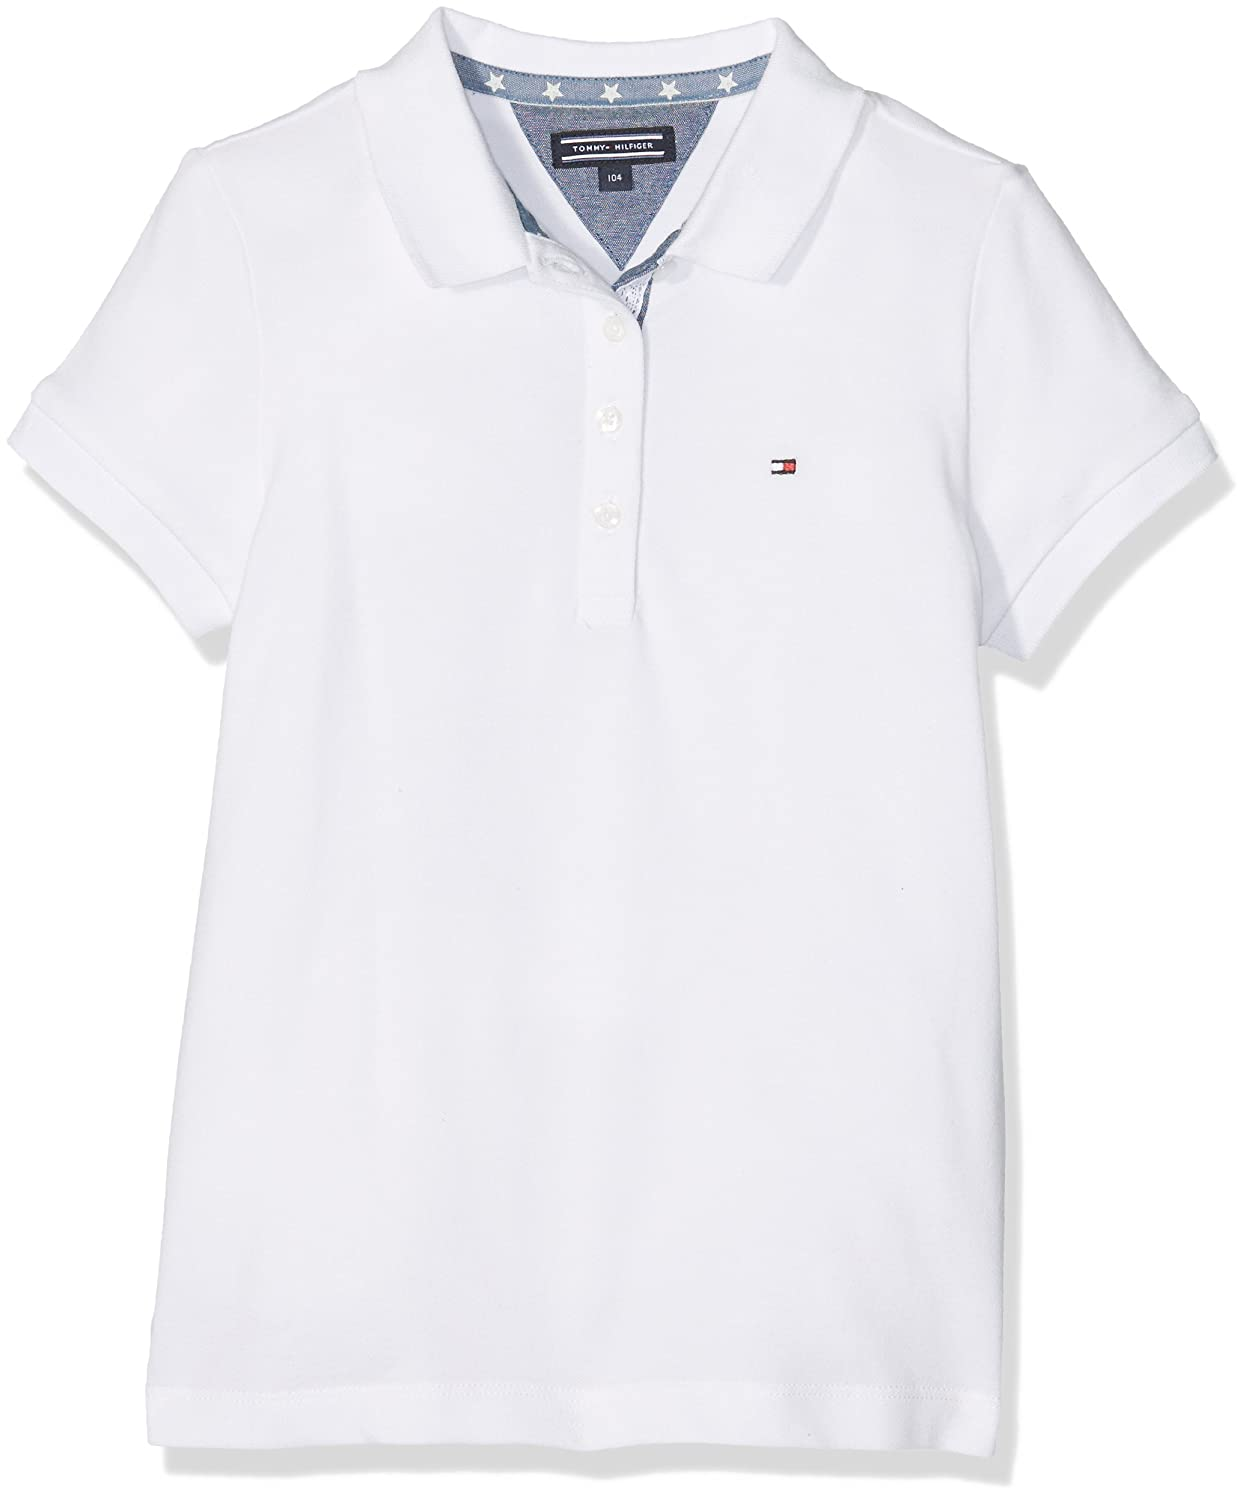 Tommy Hilfiger S Fitted Polo S/s, Niños, Blanco (Classic White ...